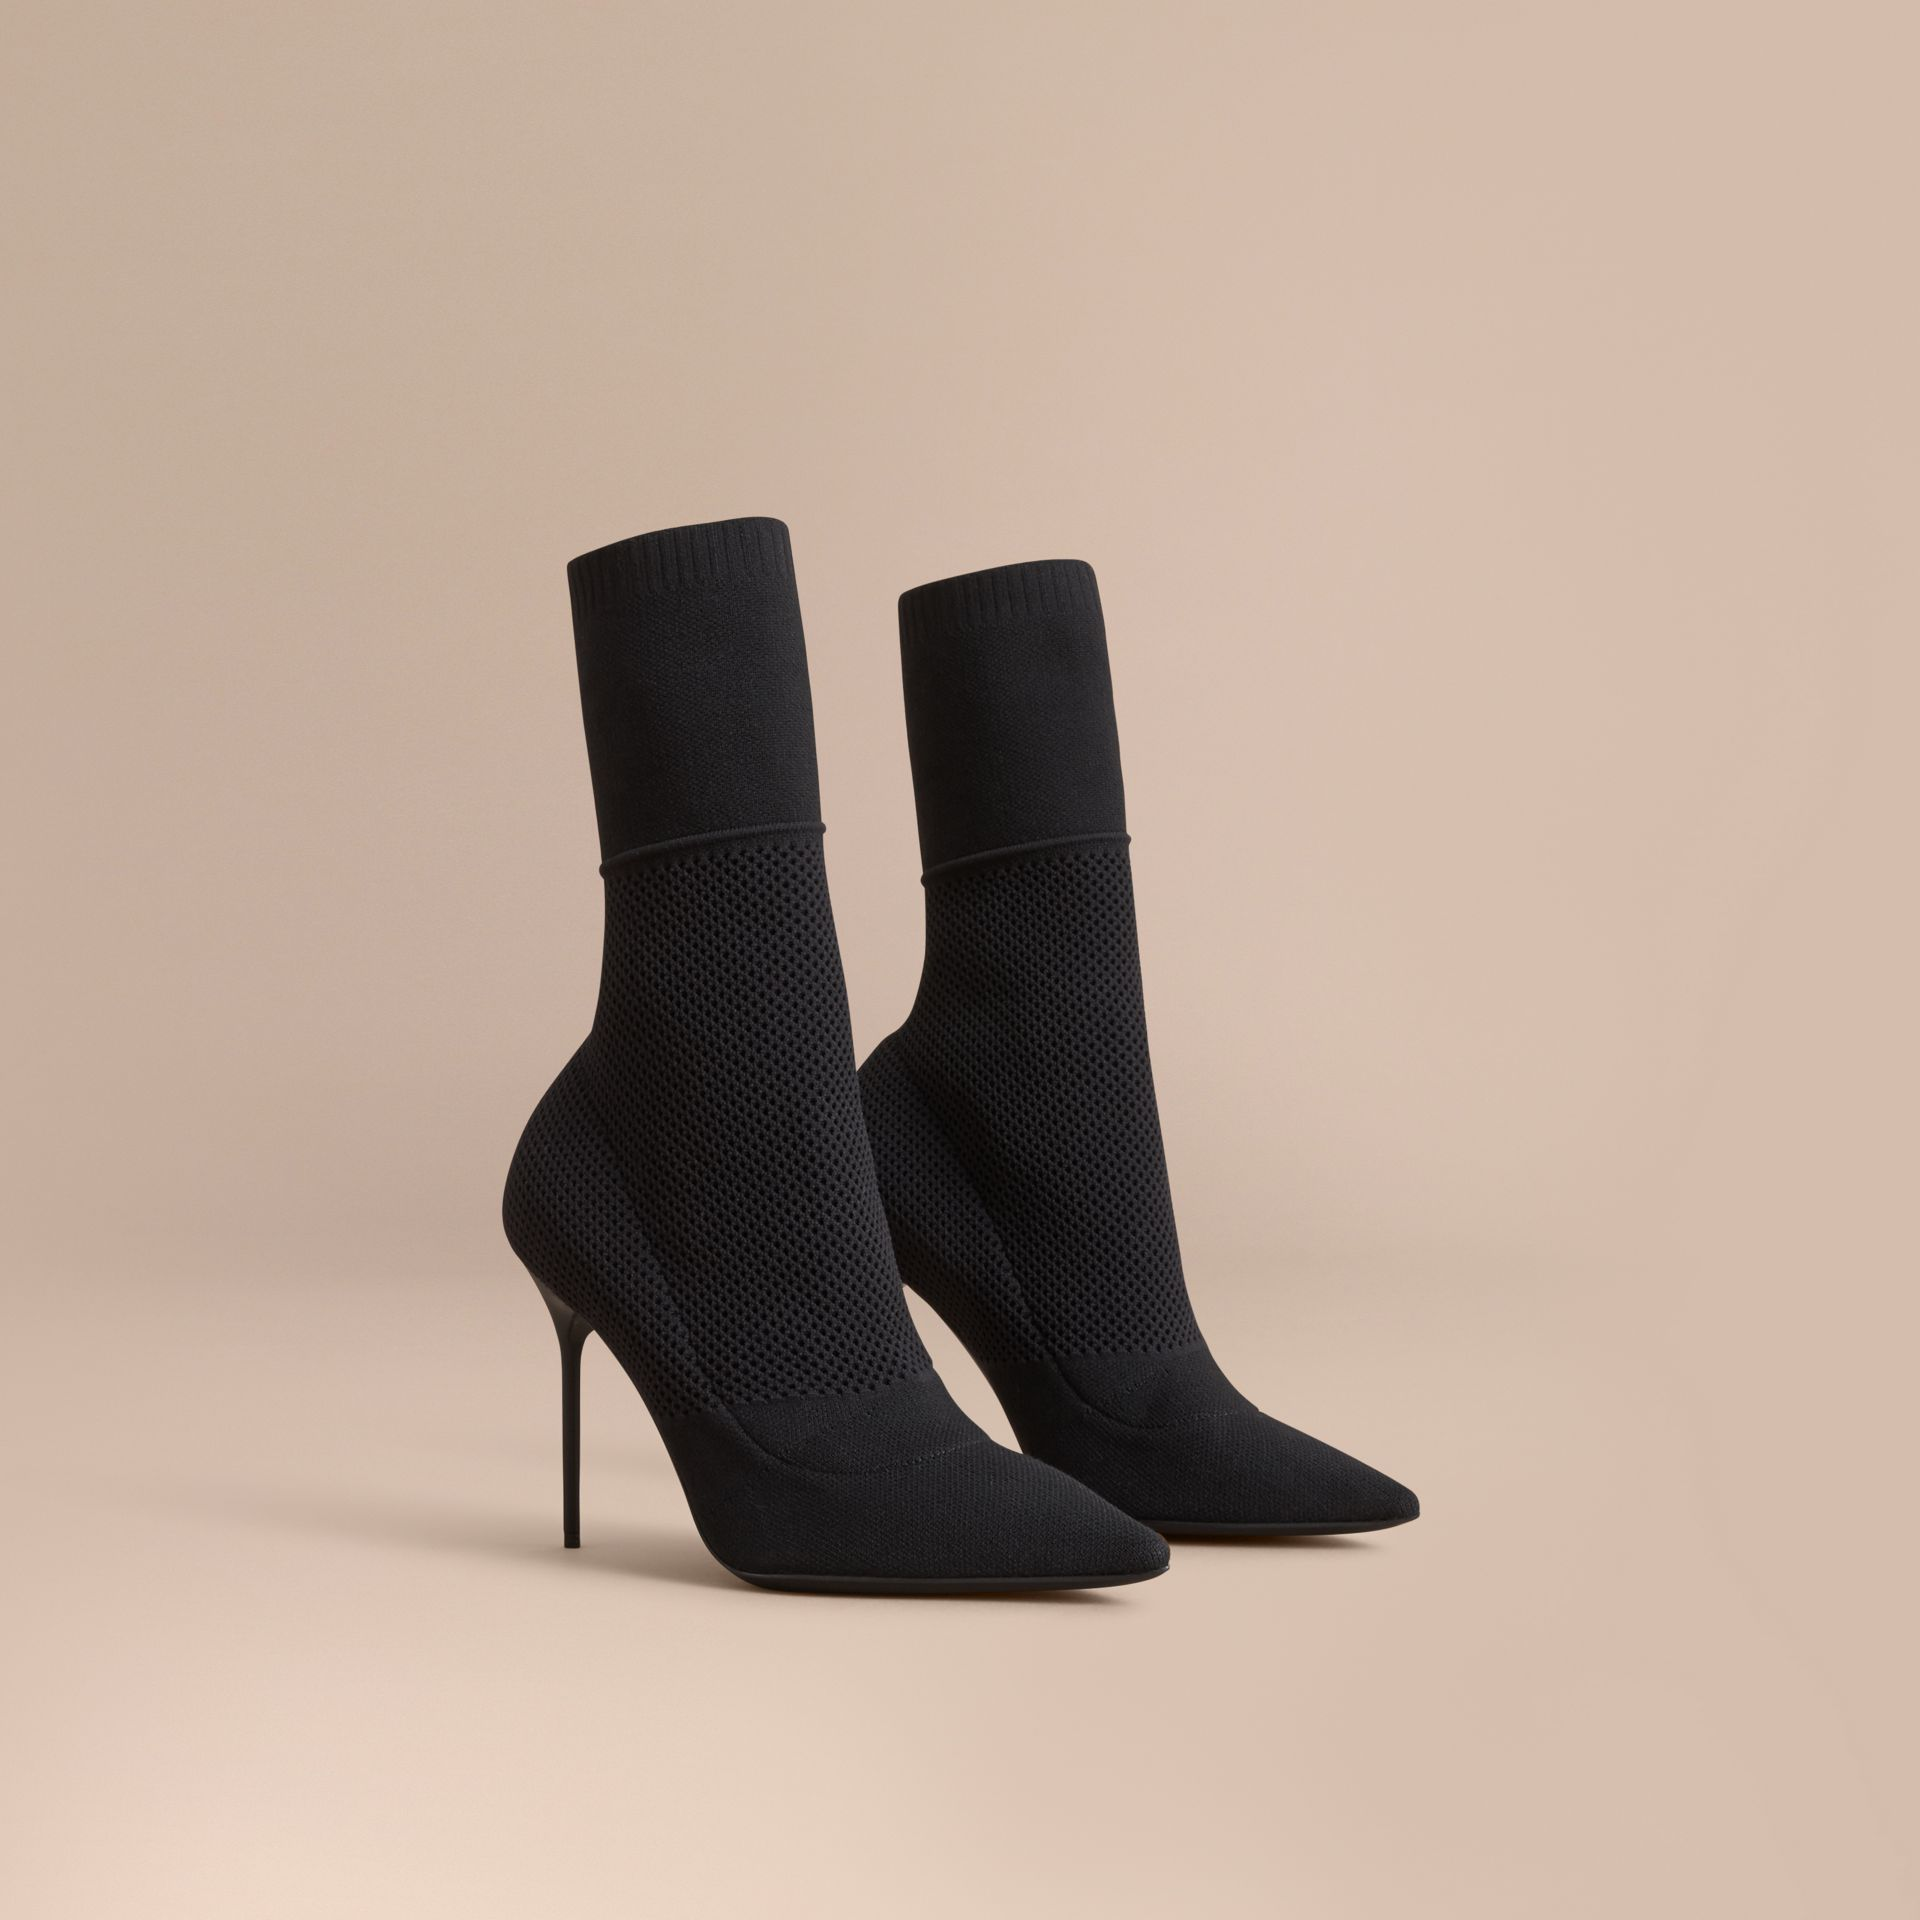 Bottes mi-mollet en maille filet (Noir) - Femme | Burberry - photo de la galerie 1